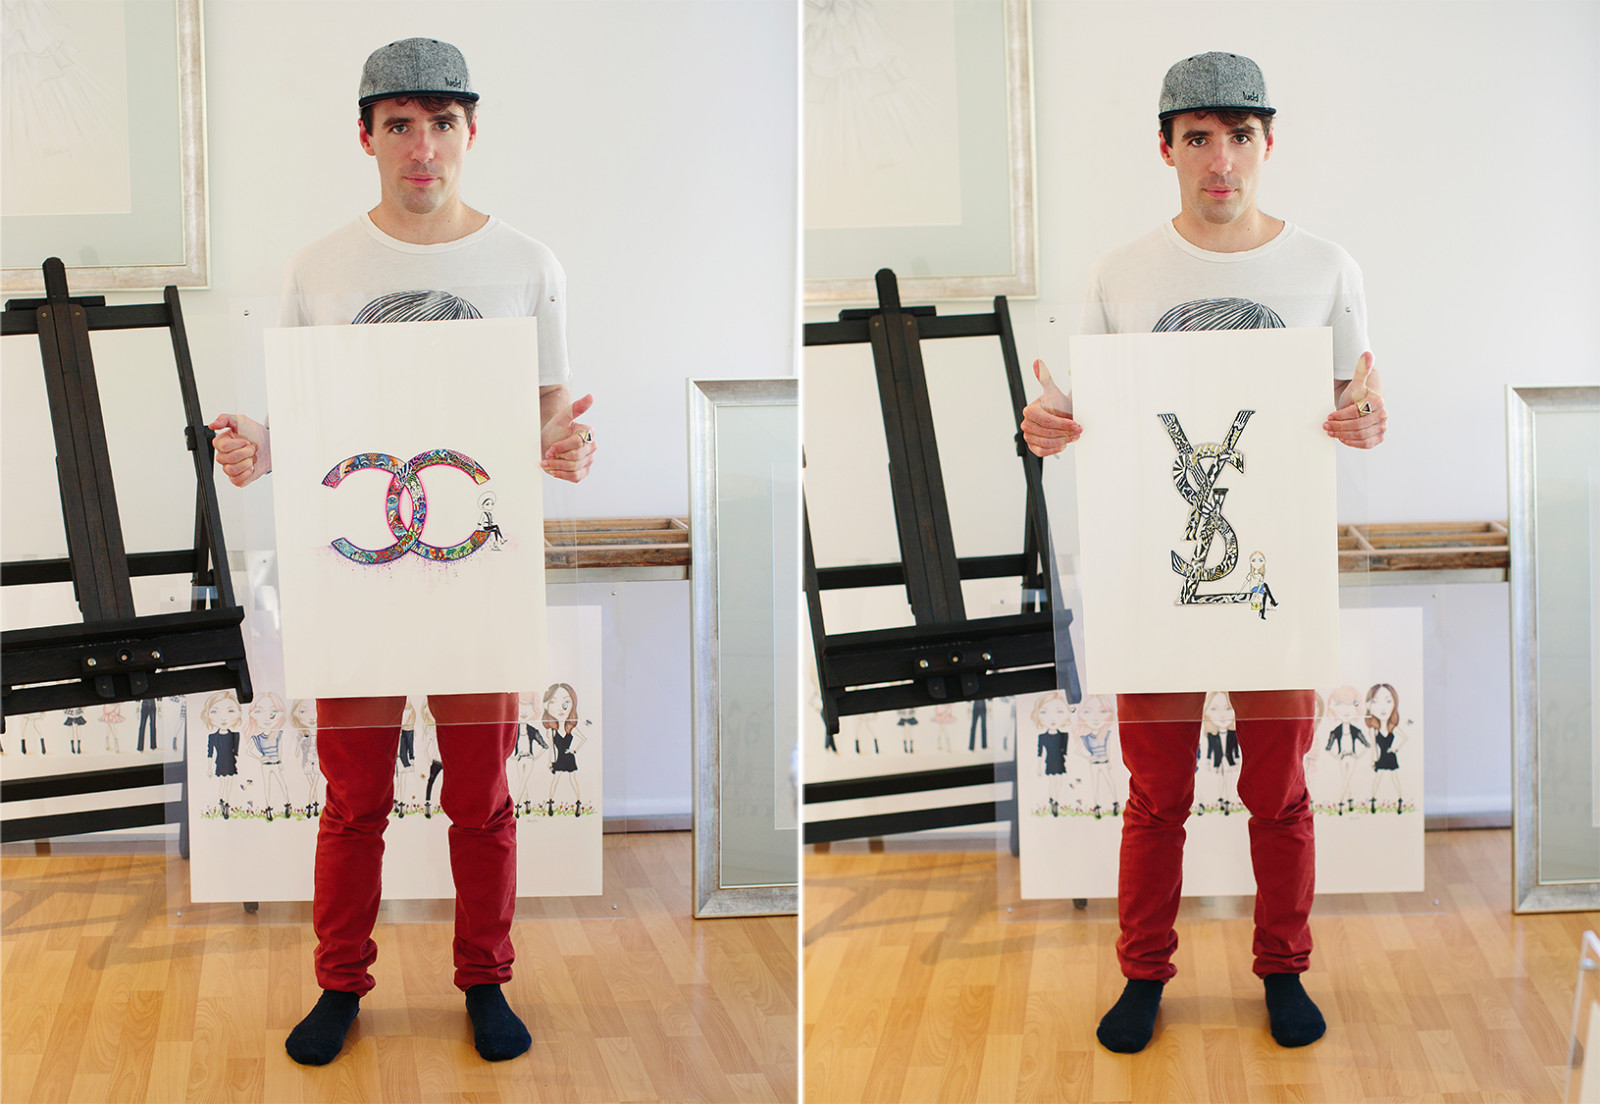 Aaron-Favaloro-Illustrator-YSL-Love-Note-Photo